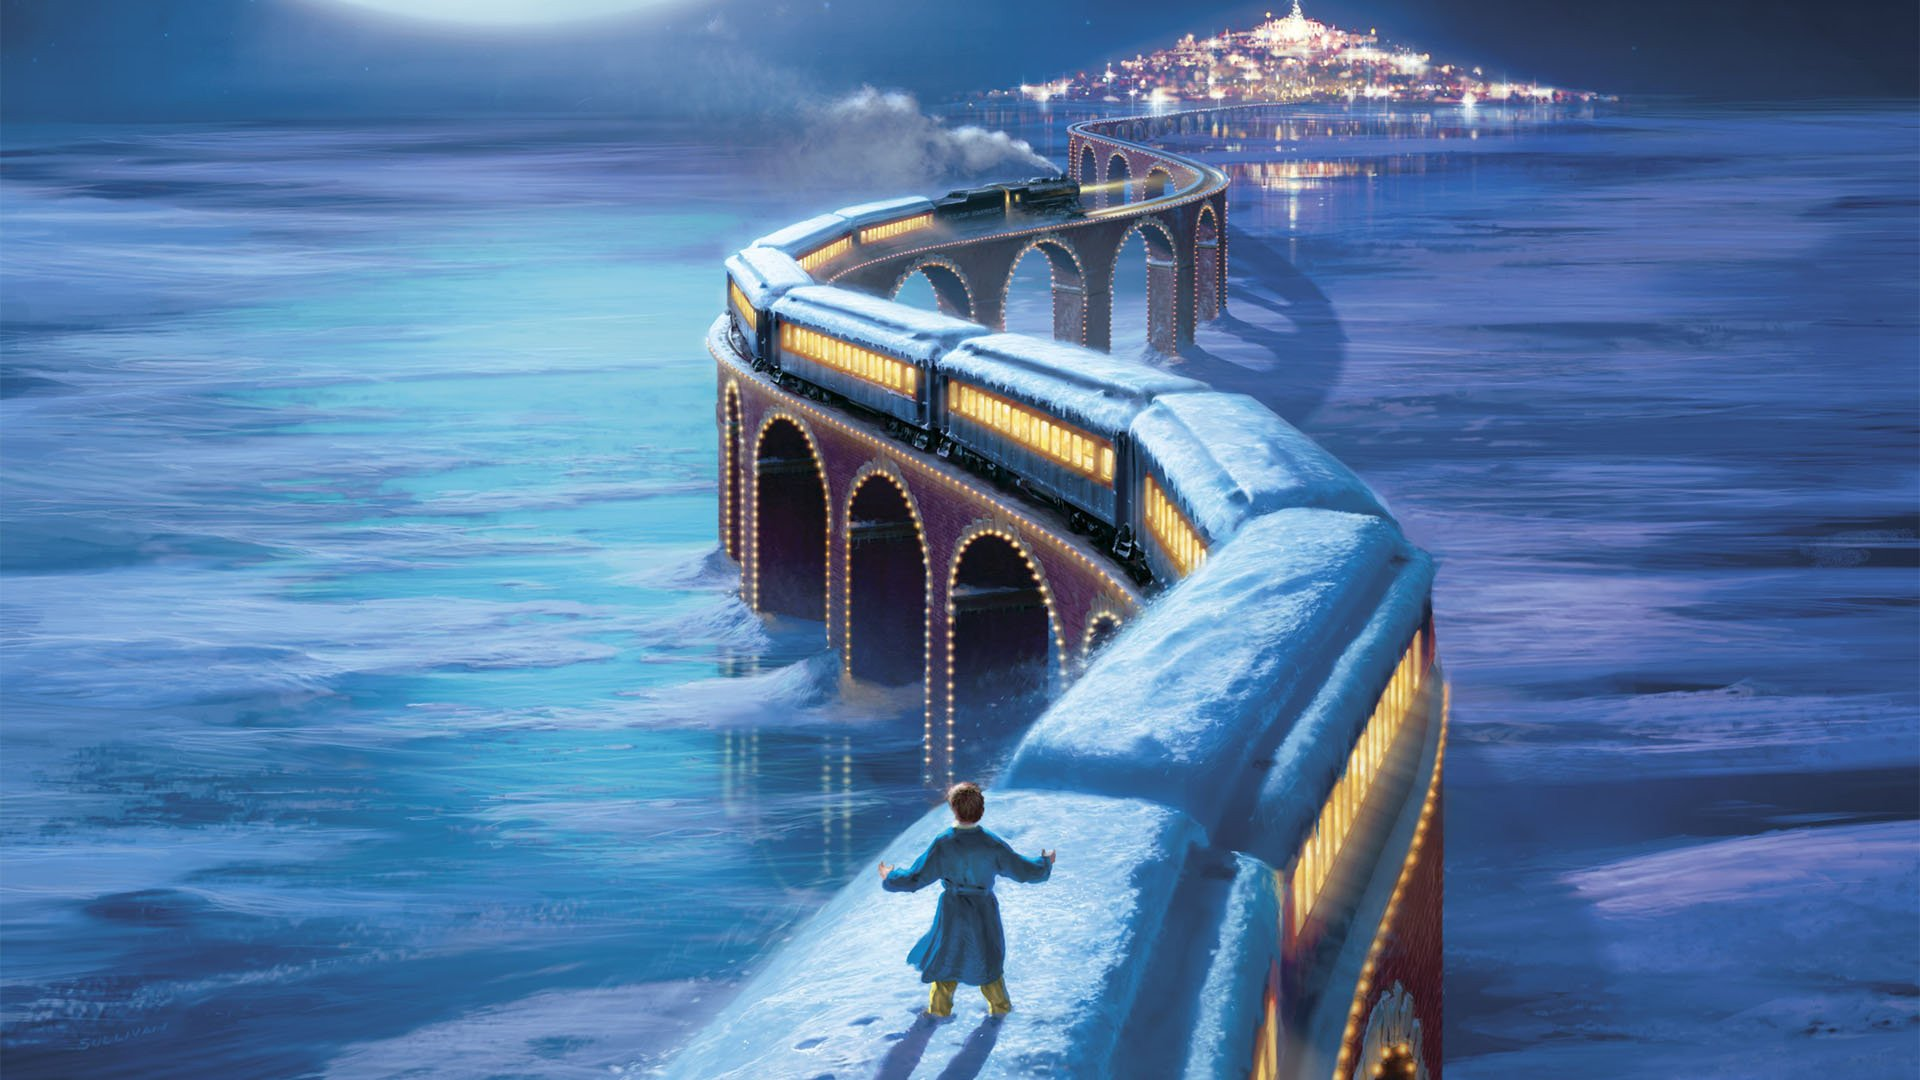 The polar express full hd wallpaper and background image 1920x1080 id 336248 - Polar express hd ...